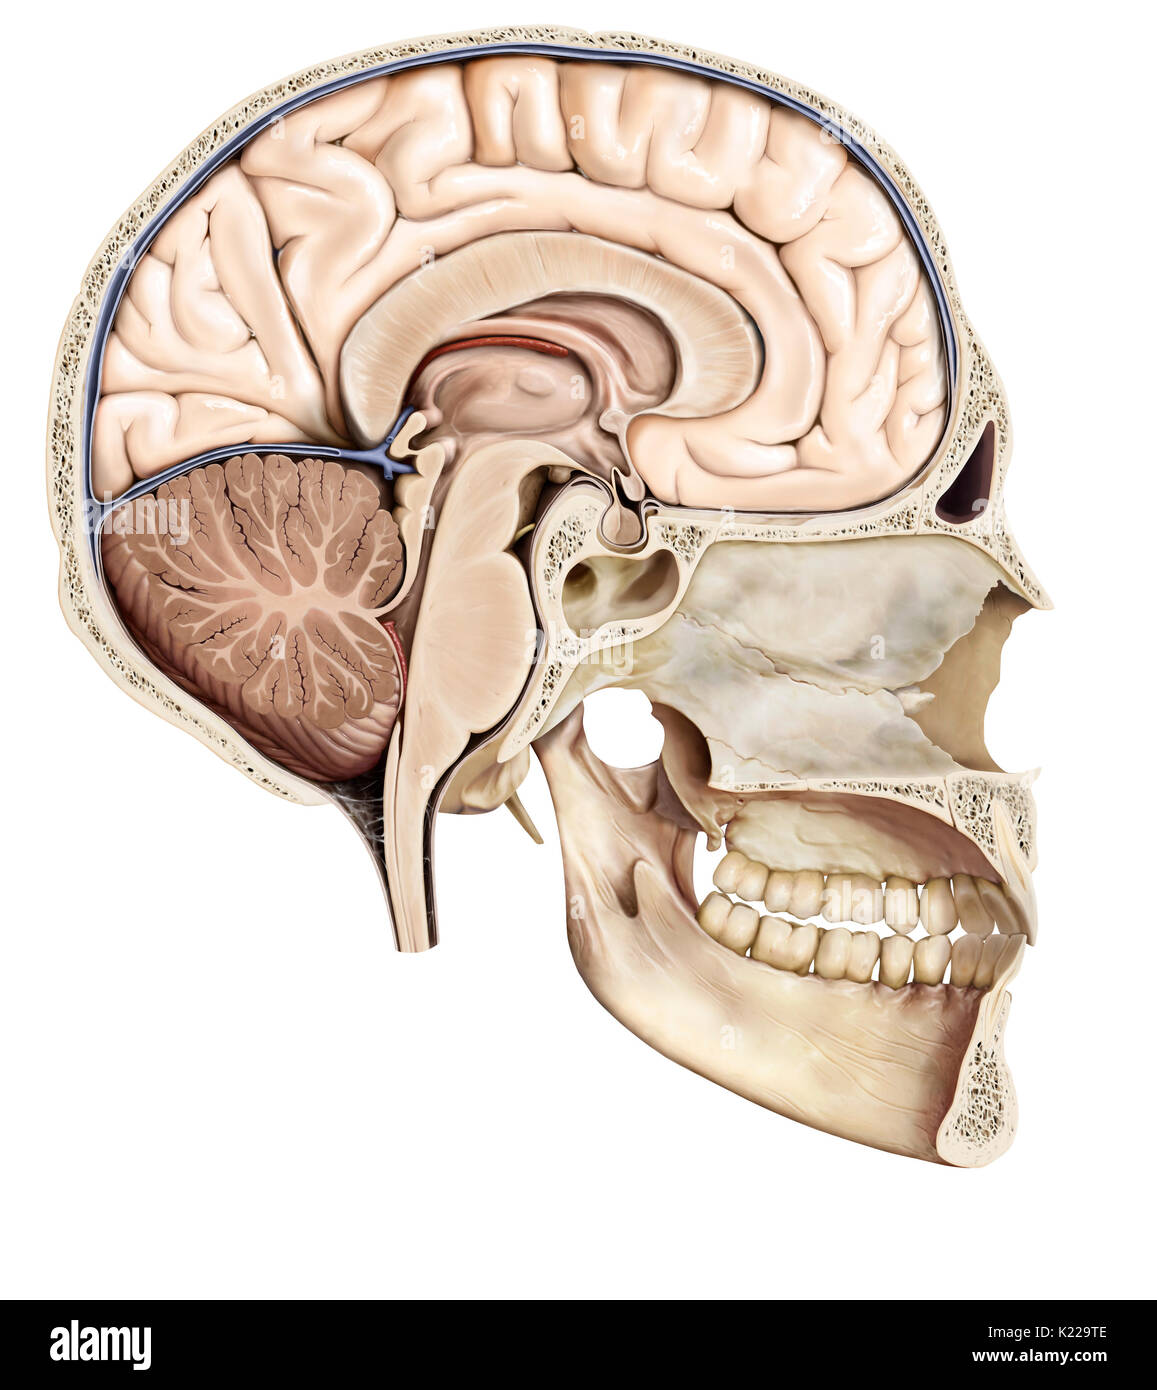 Part of the central nervous system enclosed in the skull, consisting of the cerebrum, cerebellum and brain stem; it is responsible for sensory perception, most movements, memory, language, reflexes and vital functions. - Stock Image